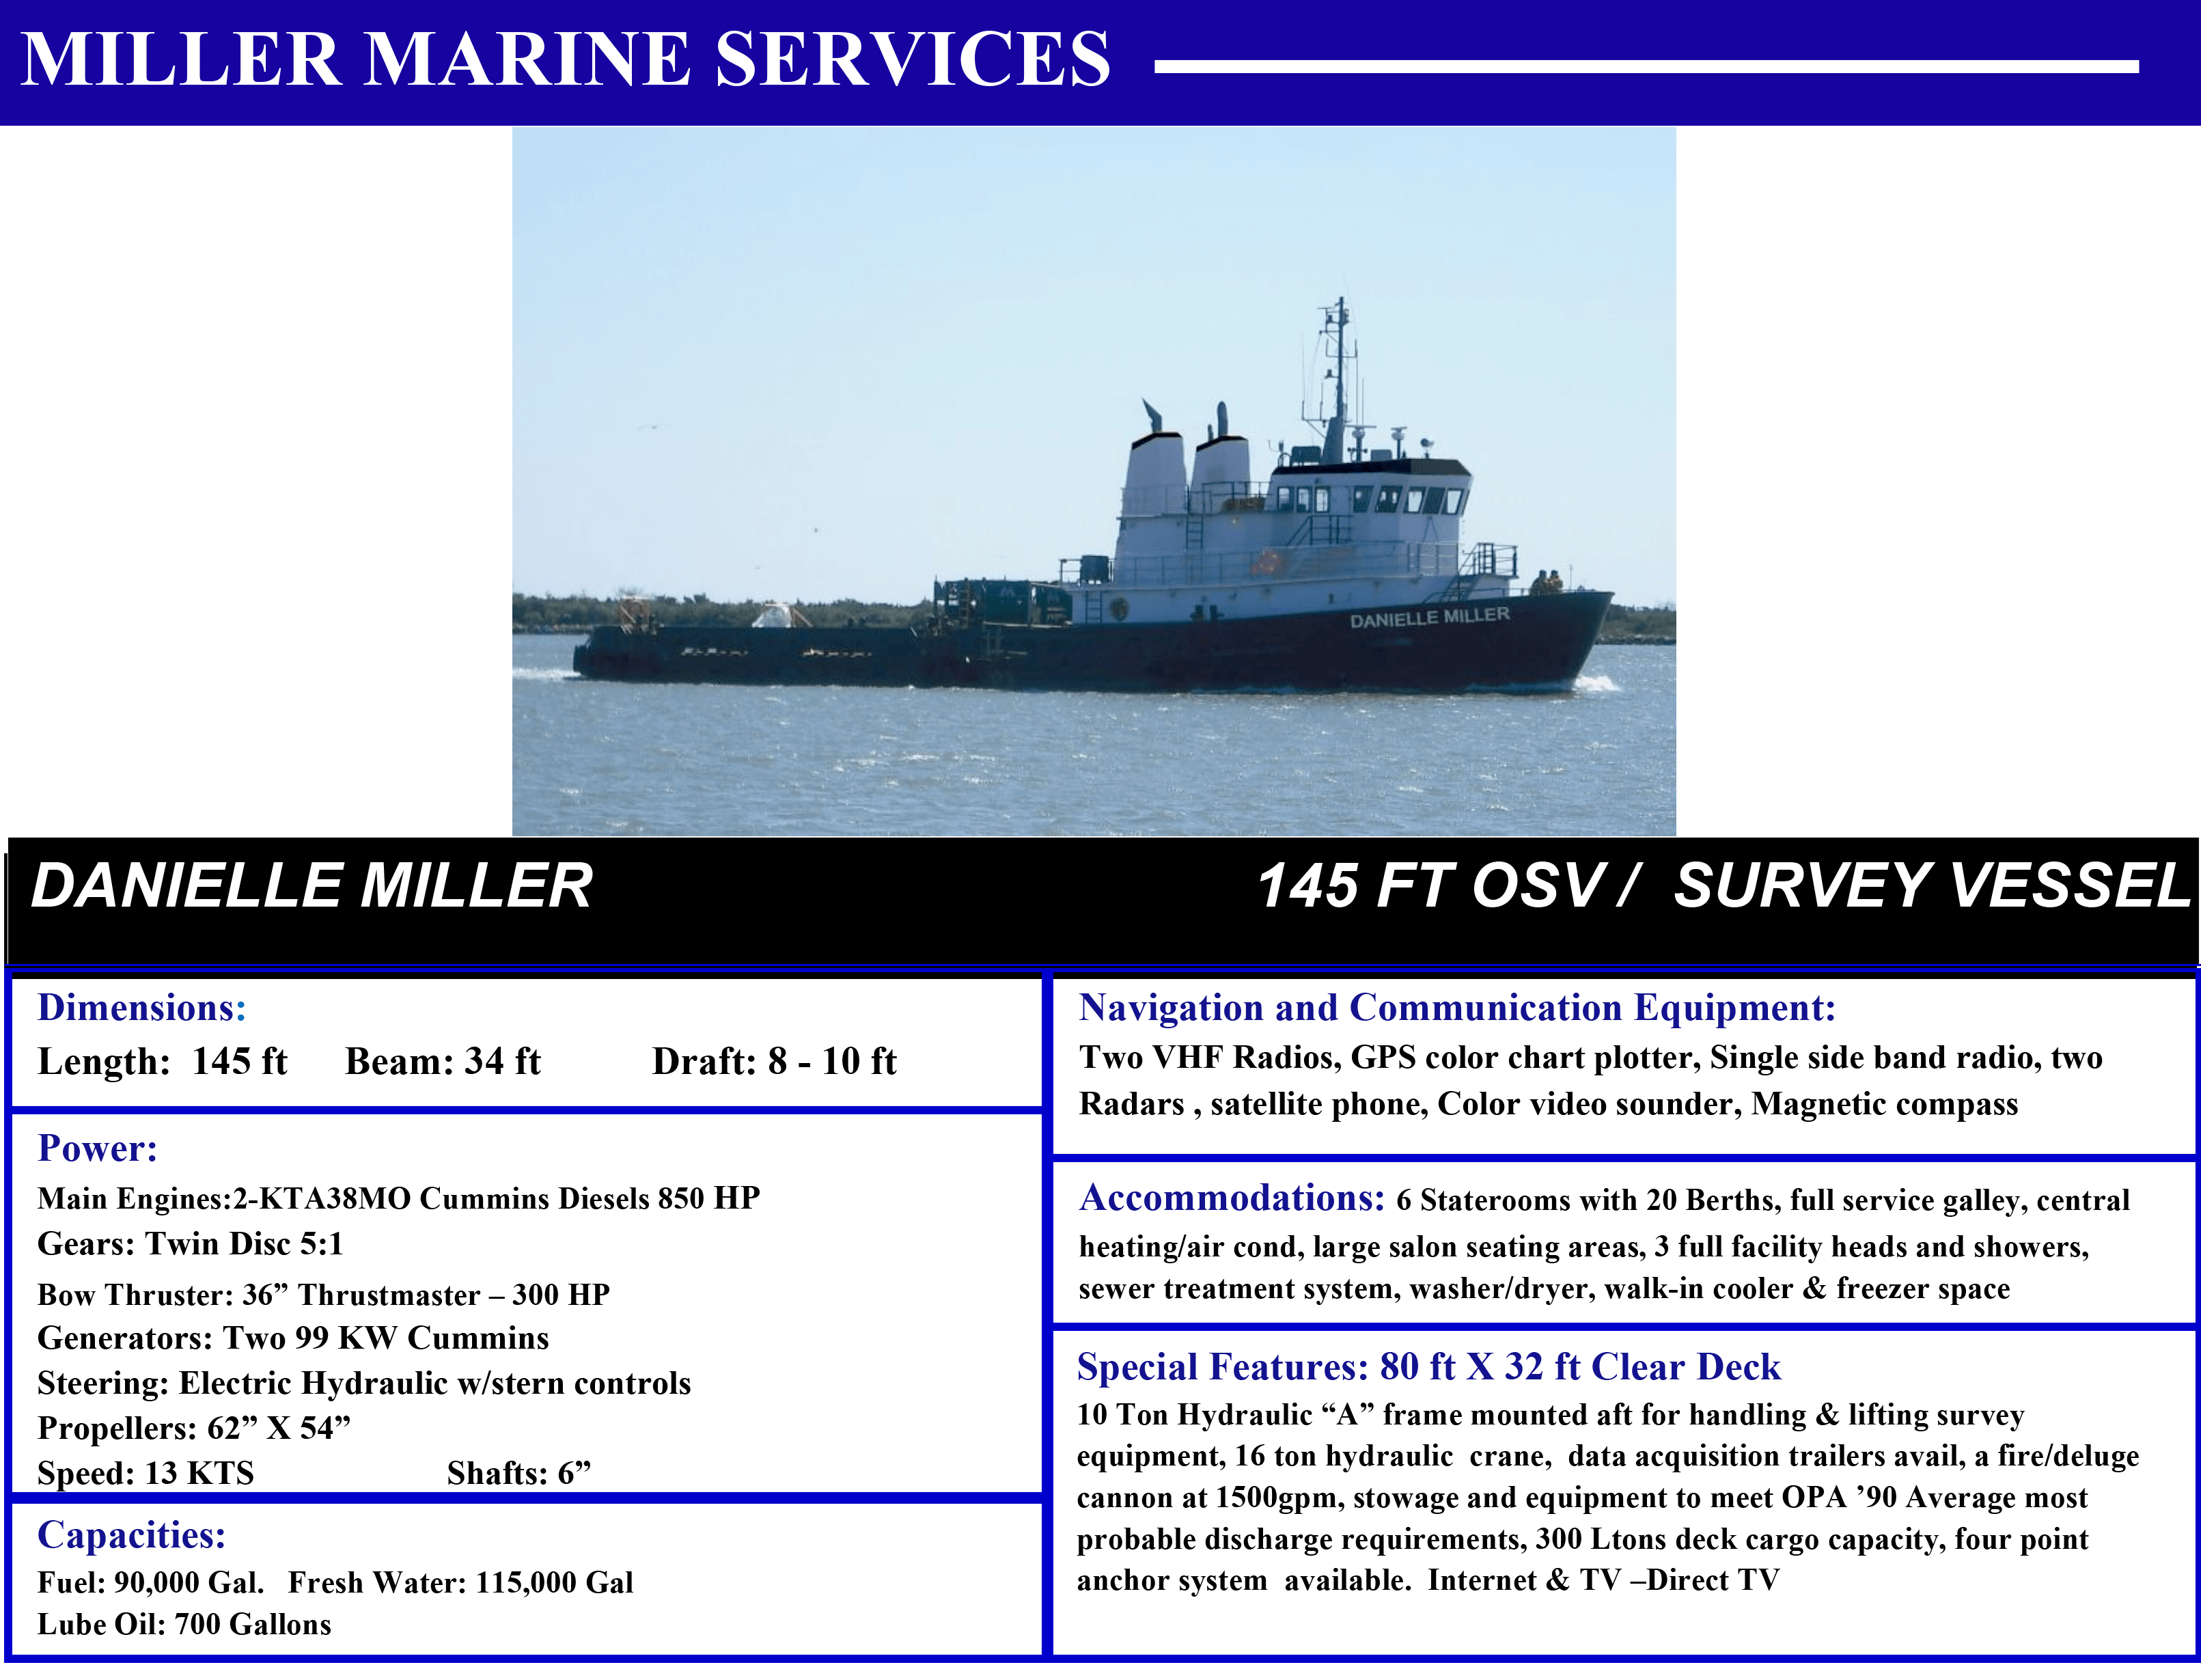 Danielle Miller 140' Survey Vessel with Miller Marine Services